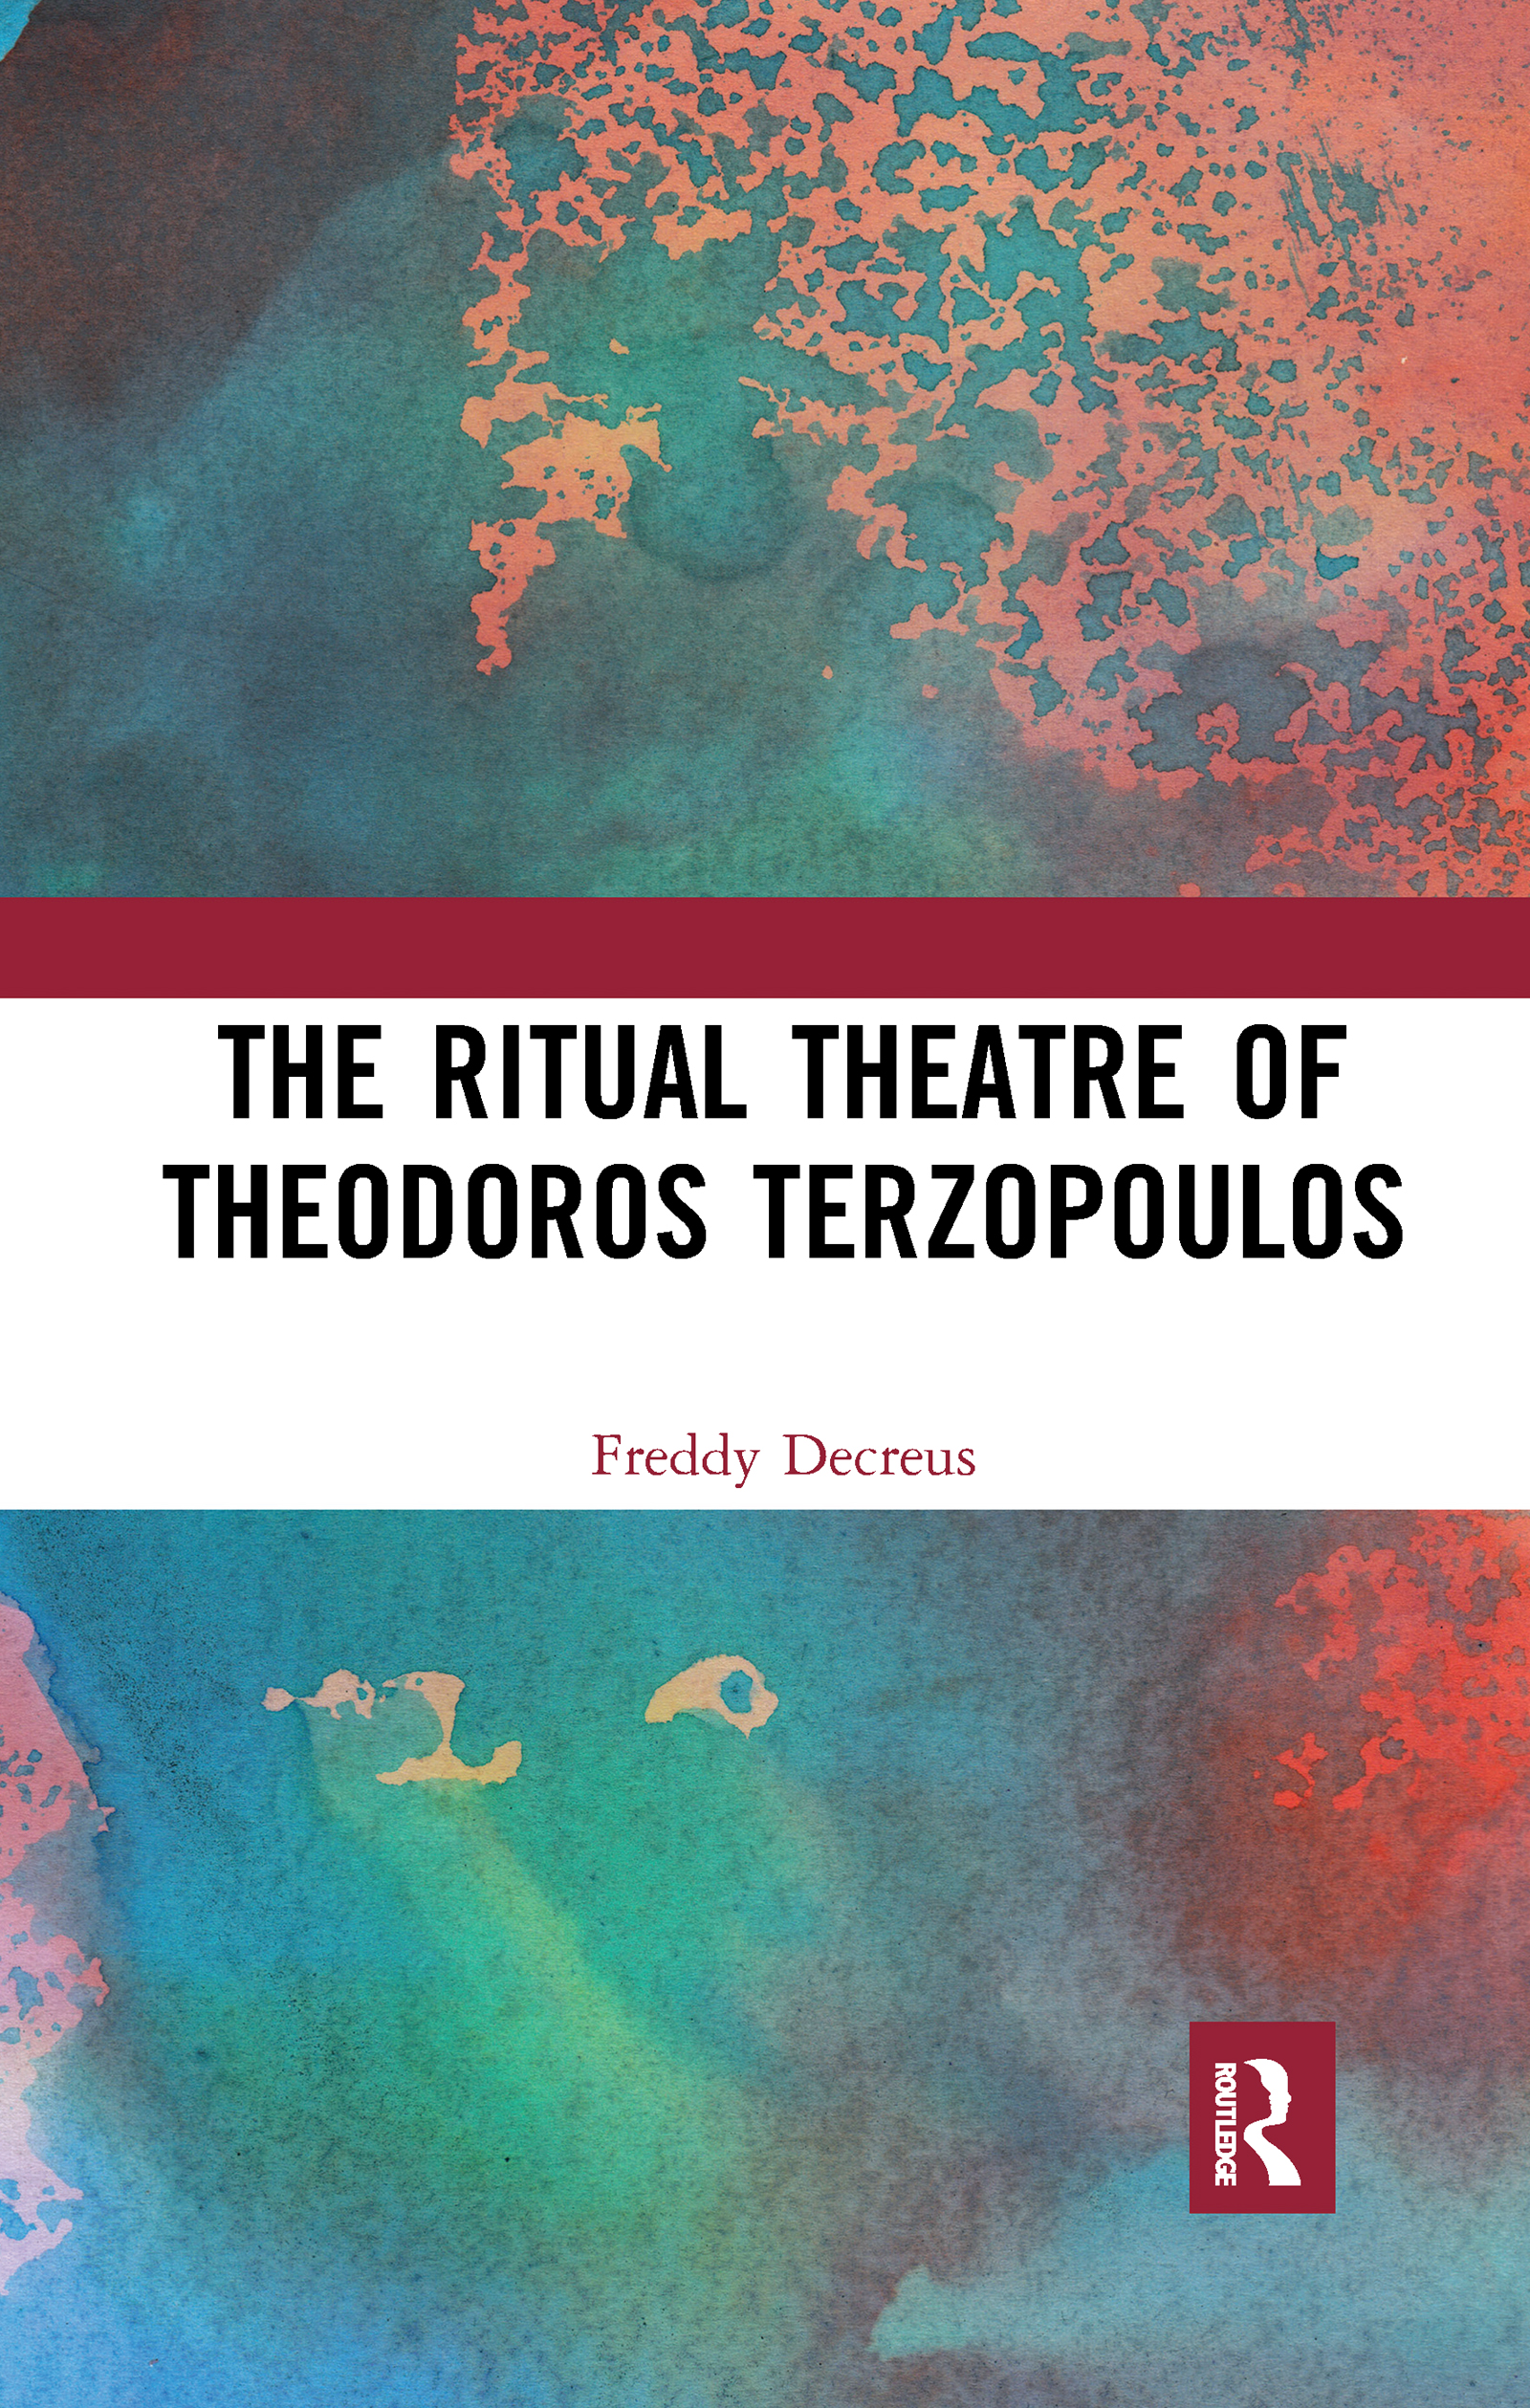 The Ritual Theatre of Theodoros Terzopoulos